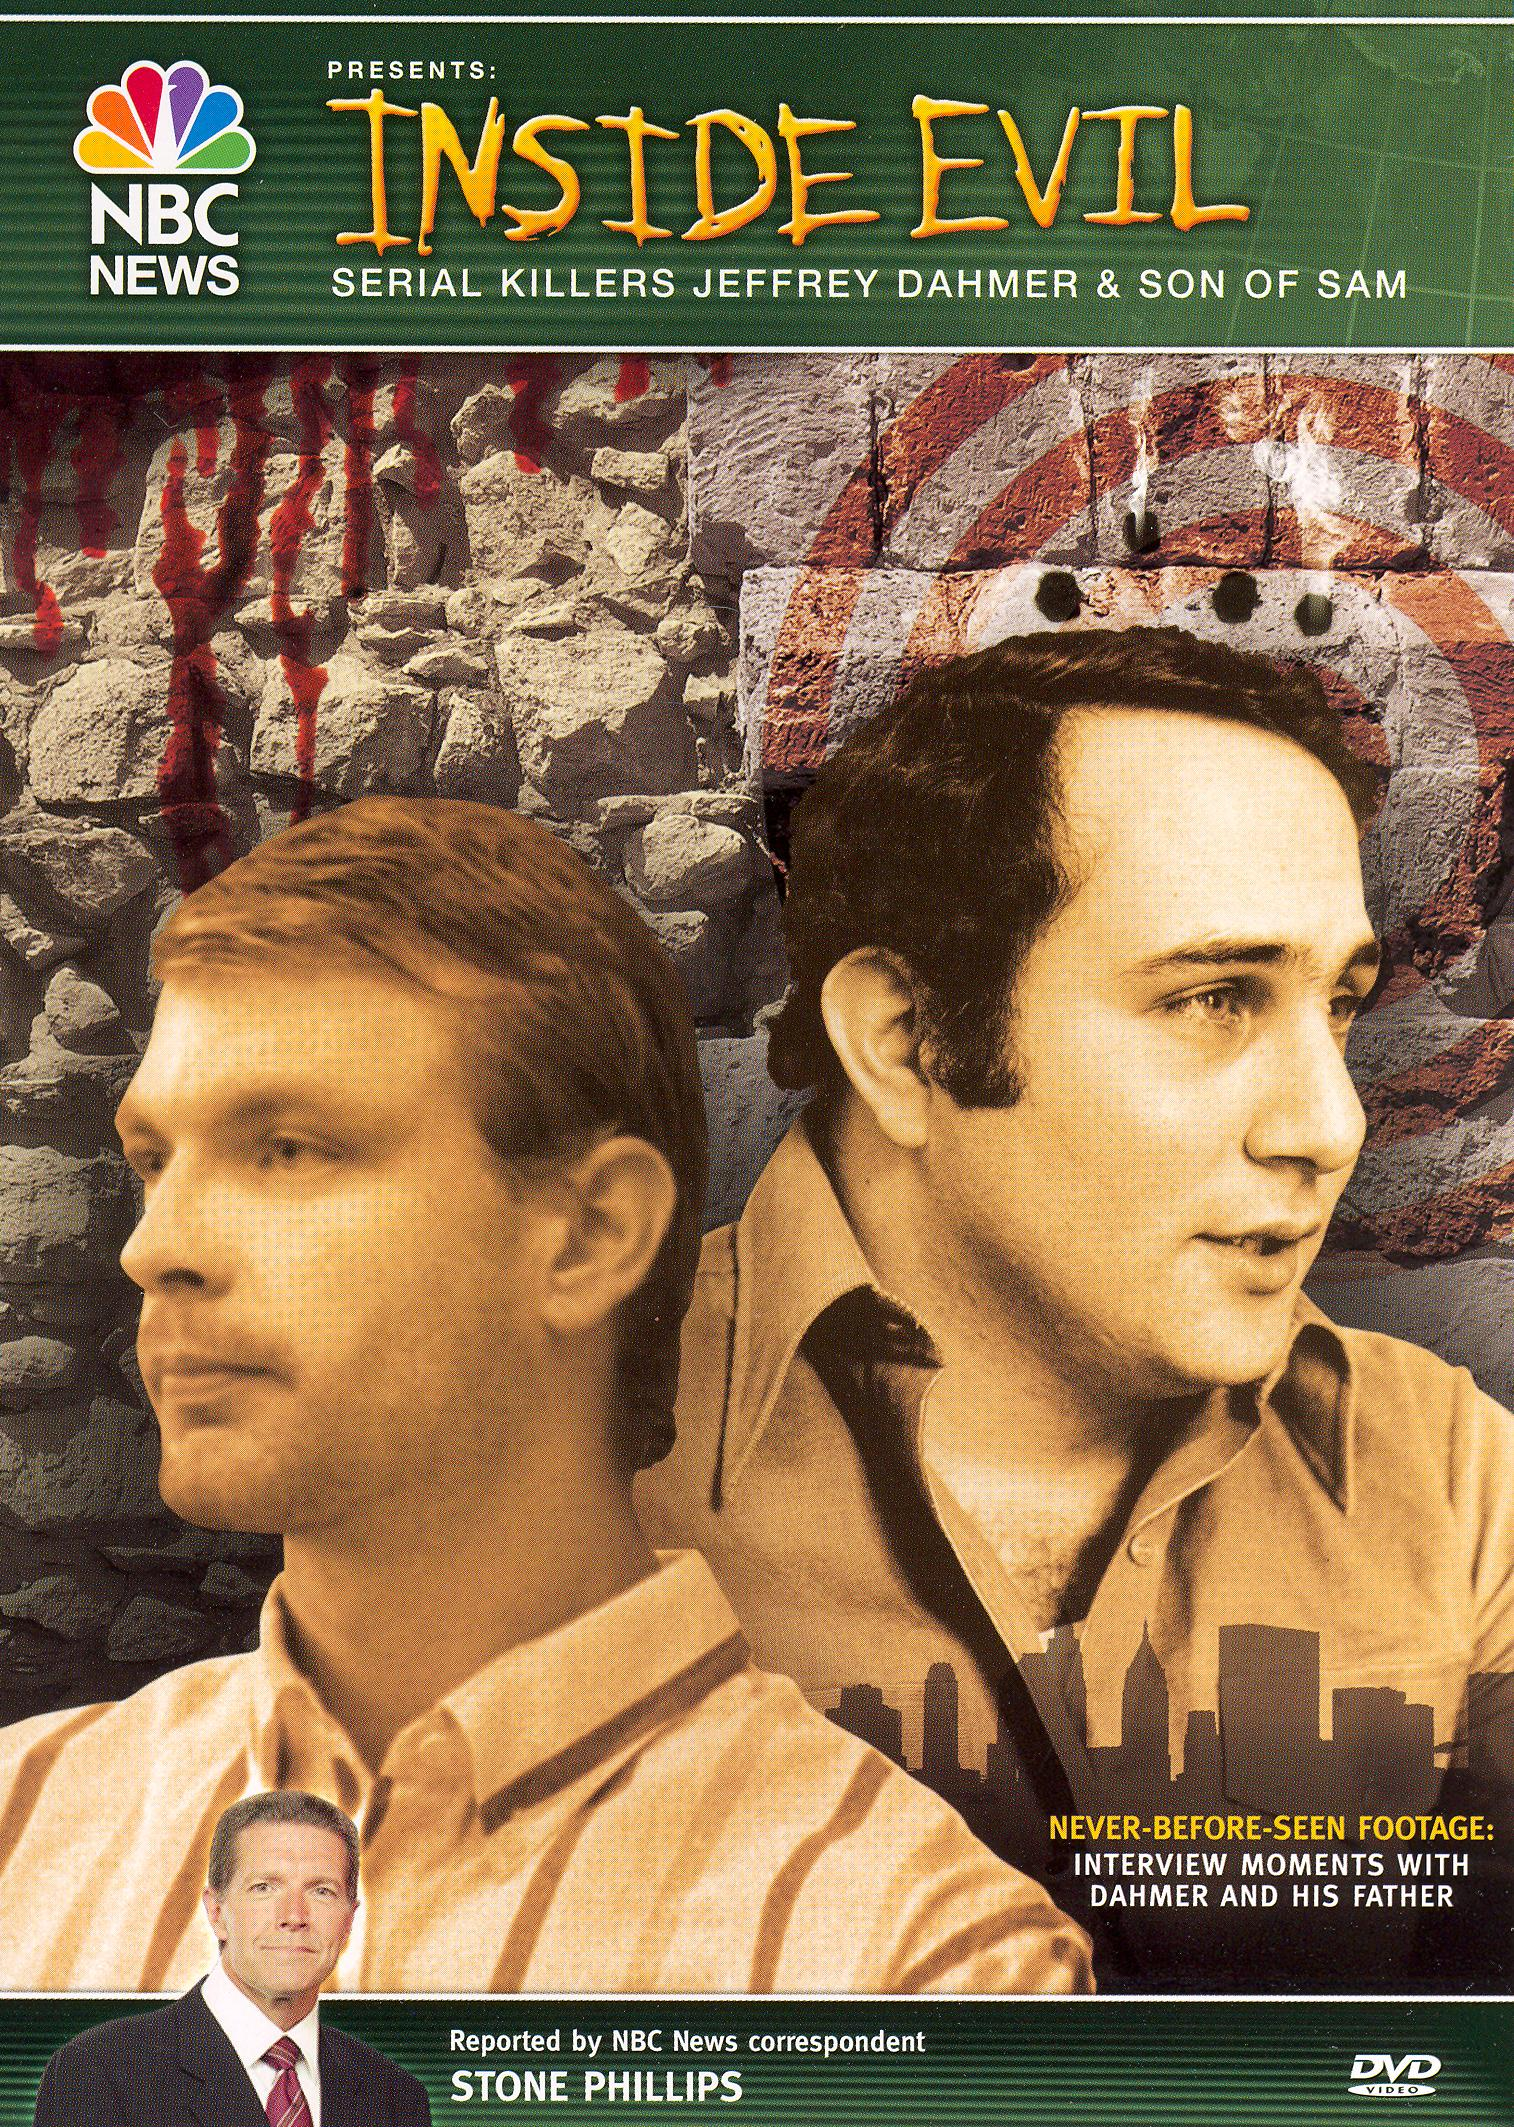 NBC News Presents Inside Evil: Minds of Jeffrey Dahmer and Son of Sam